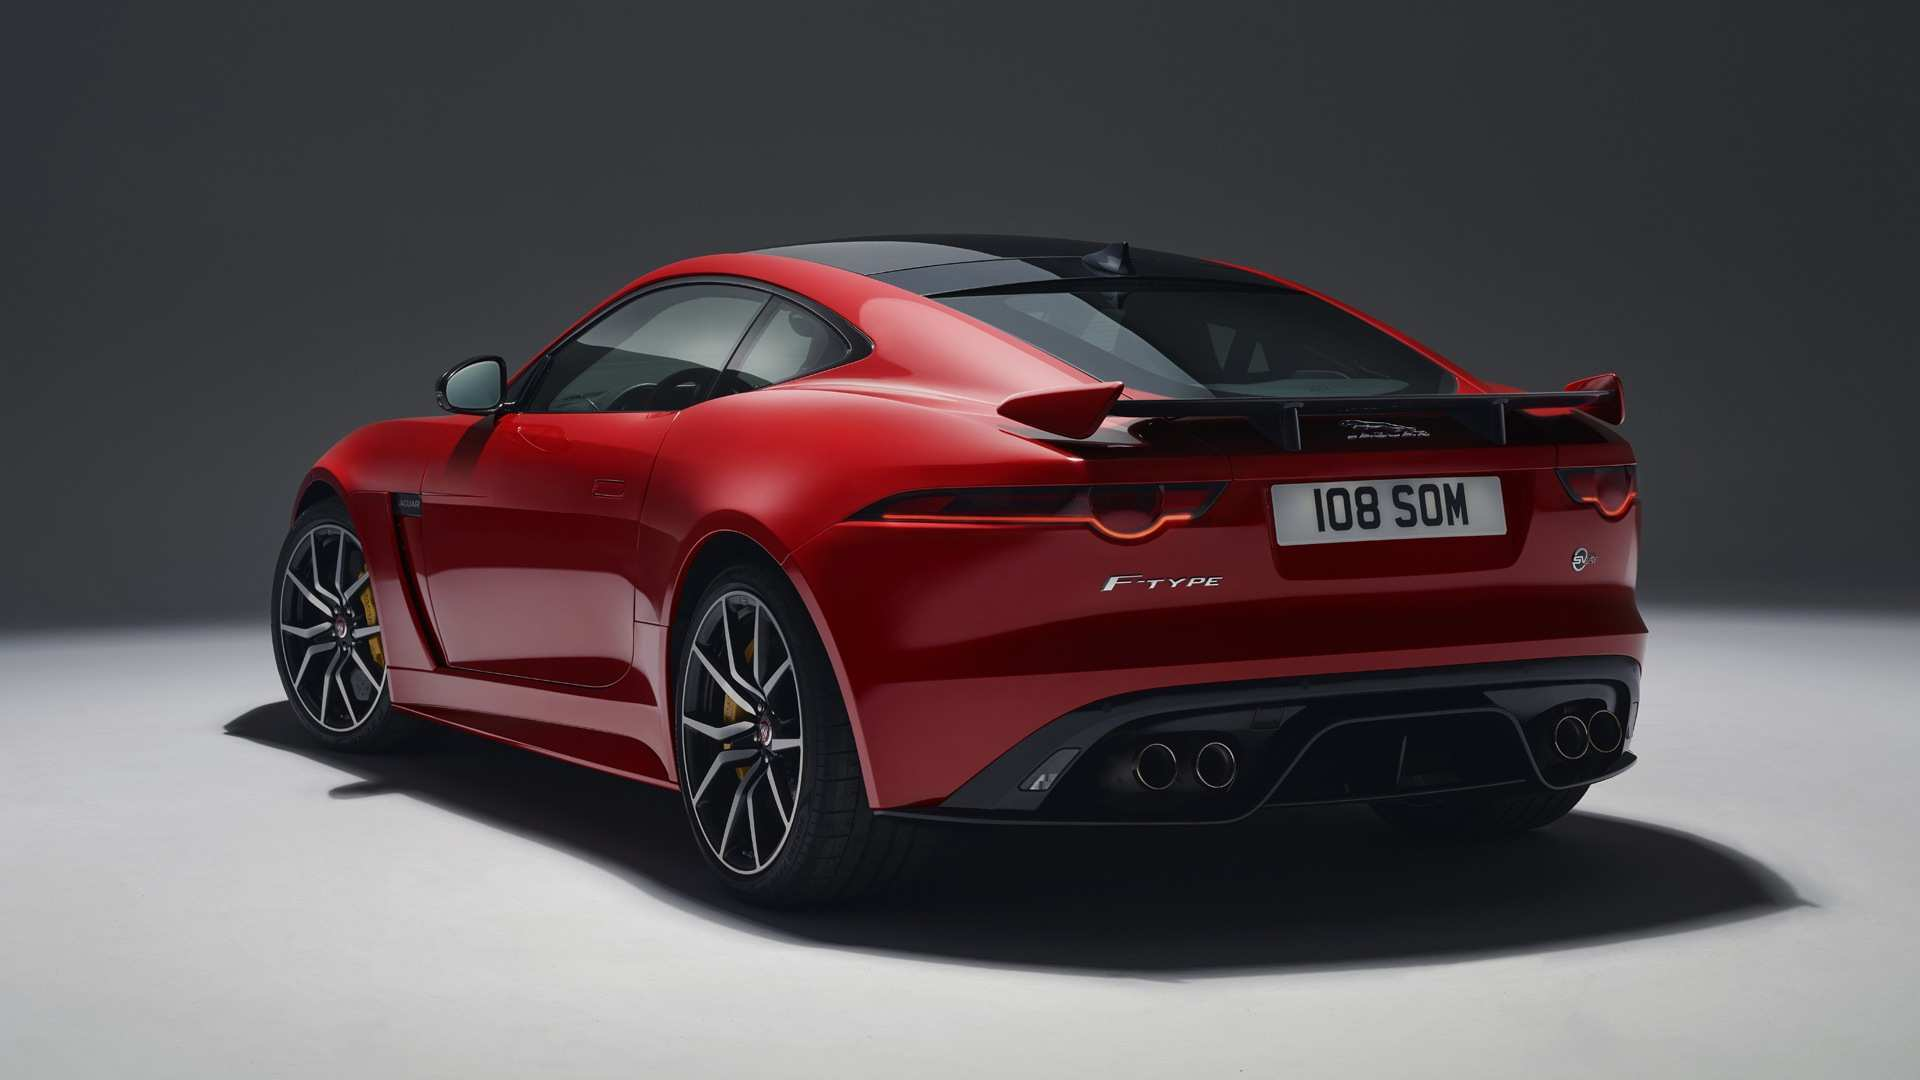 24 All New Jaguar Svr 2019 Rumors with Jaguar Svr 2019